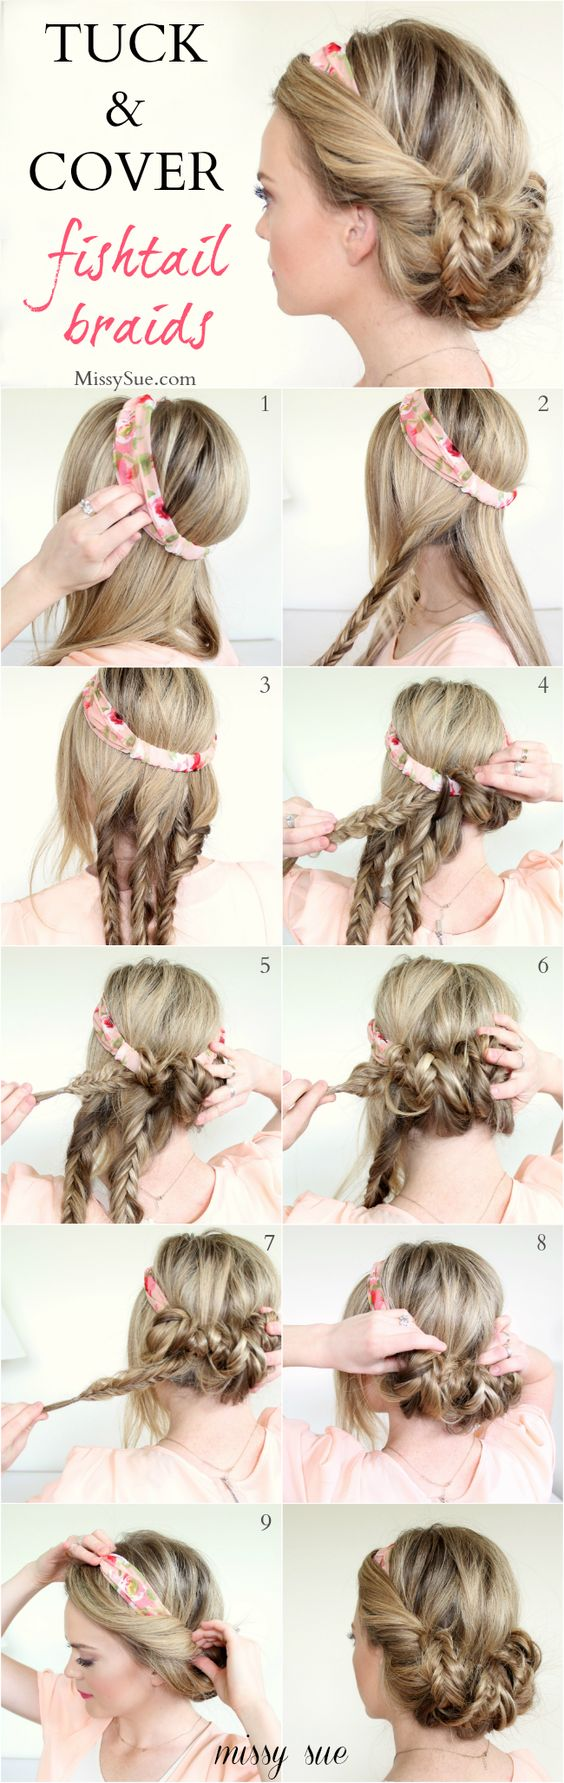 Tuck and Cover Fishtail Braids...might need to try this when I'm feeling ambitious